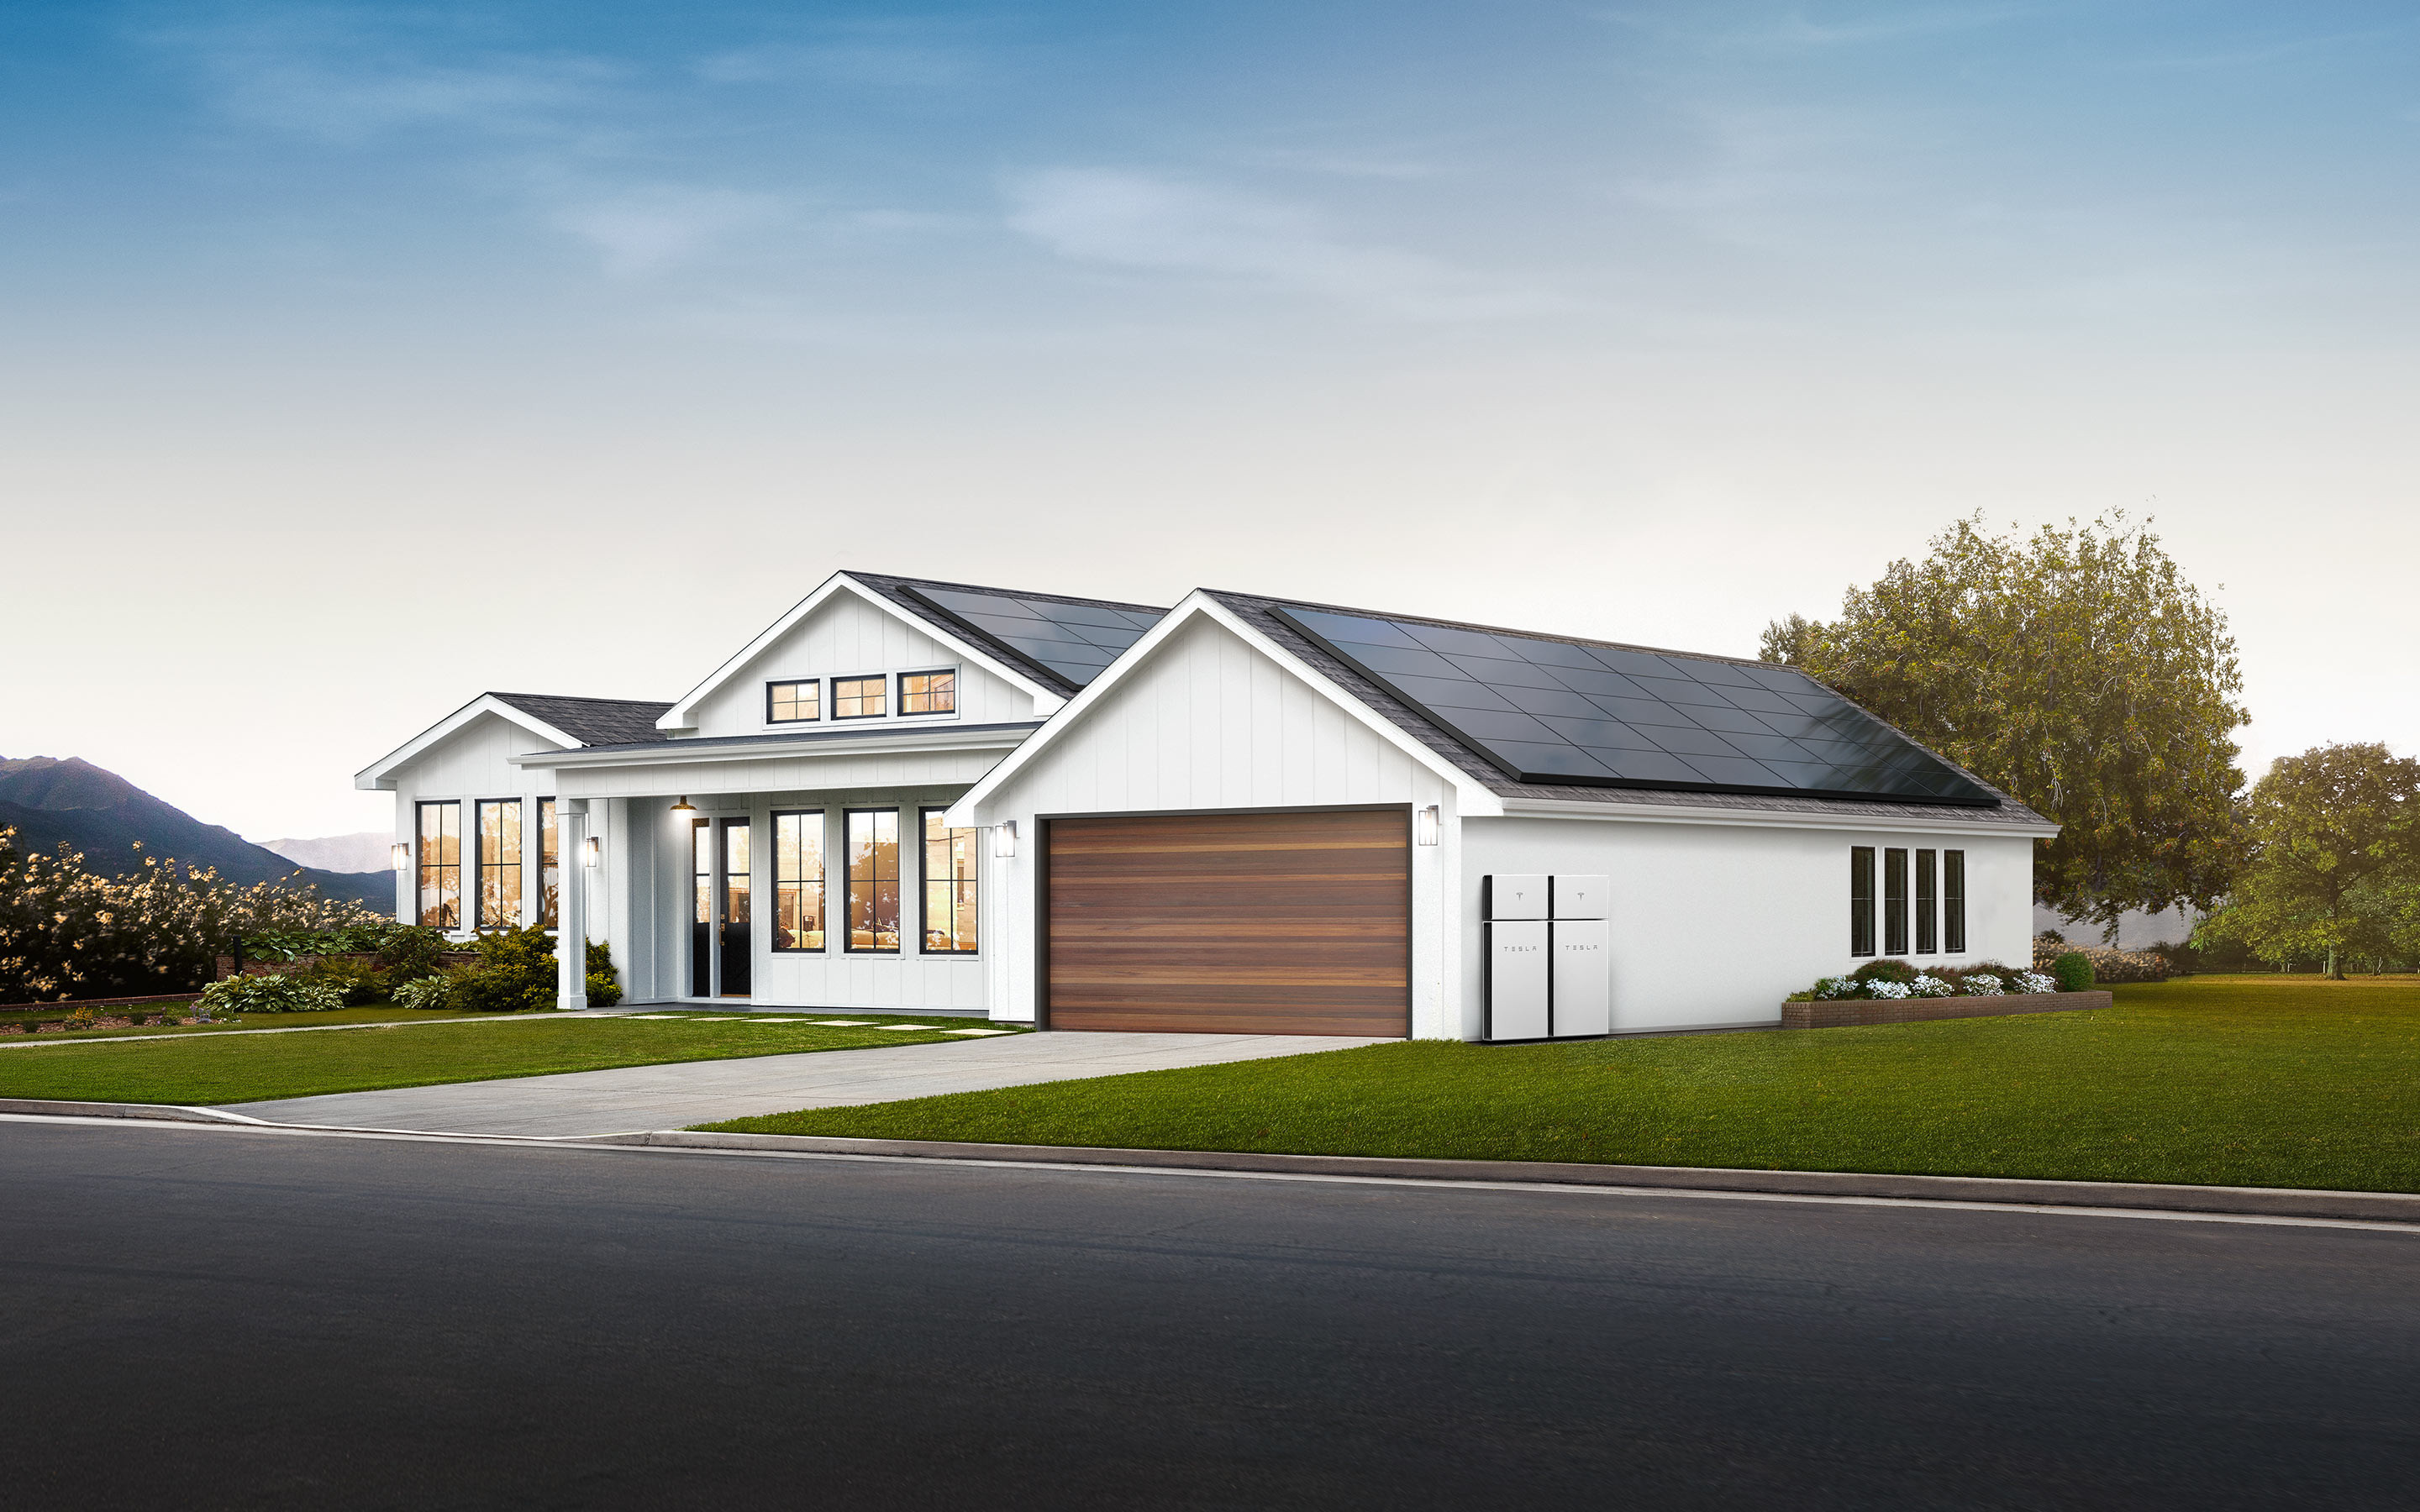 Ranch style home powered by Tesla solar panels and Powerwall